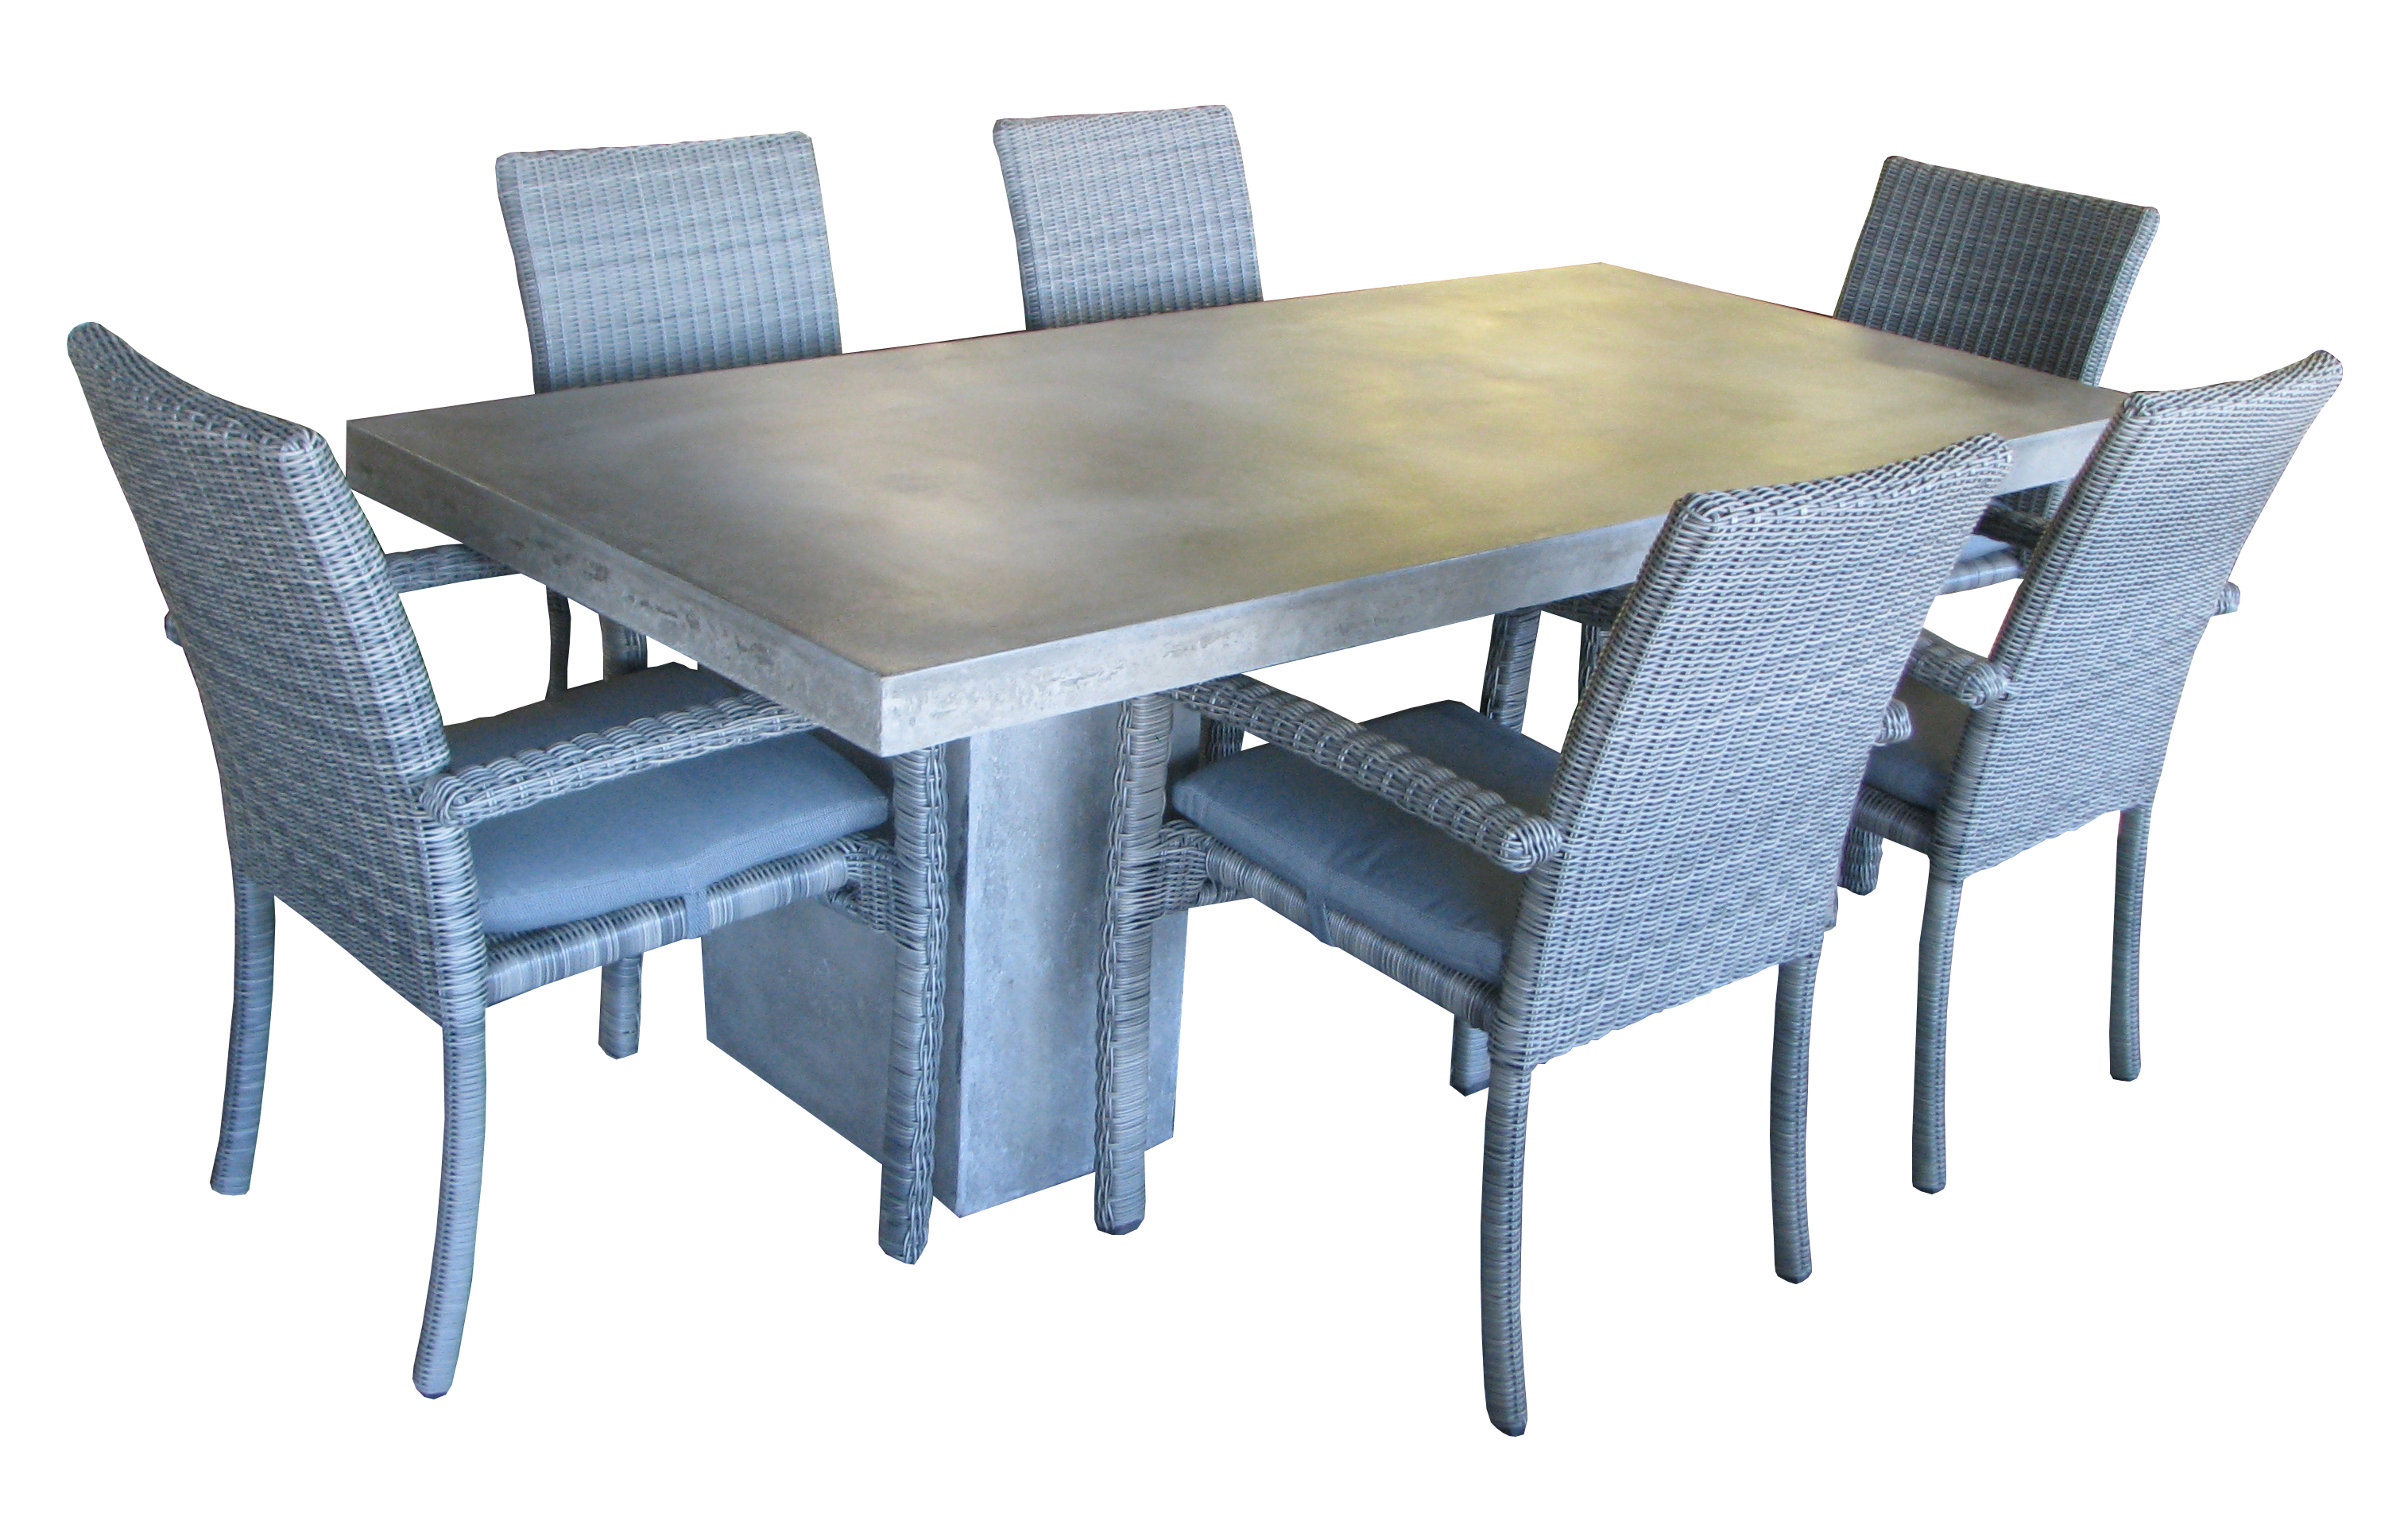 210 x 110cm 39 concrete 39 table with pillars daydream leisure furniture. Black Bedroom Furniture Sets. Home Design Ideas